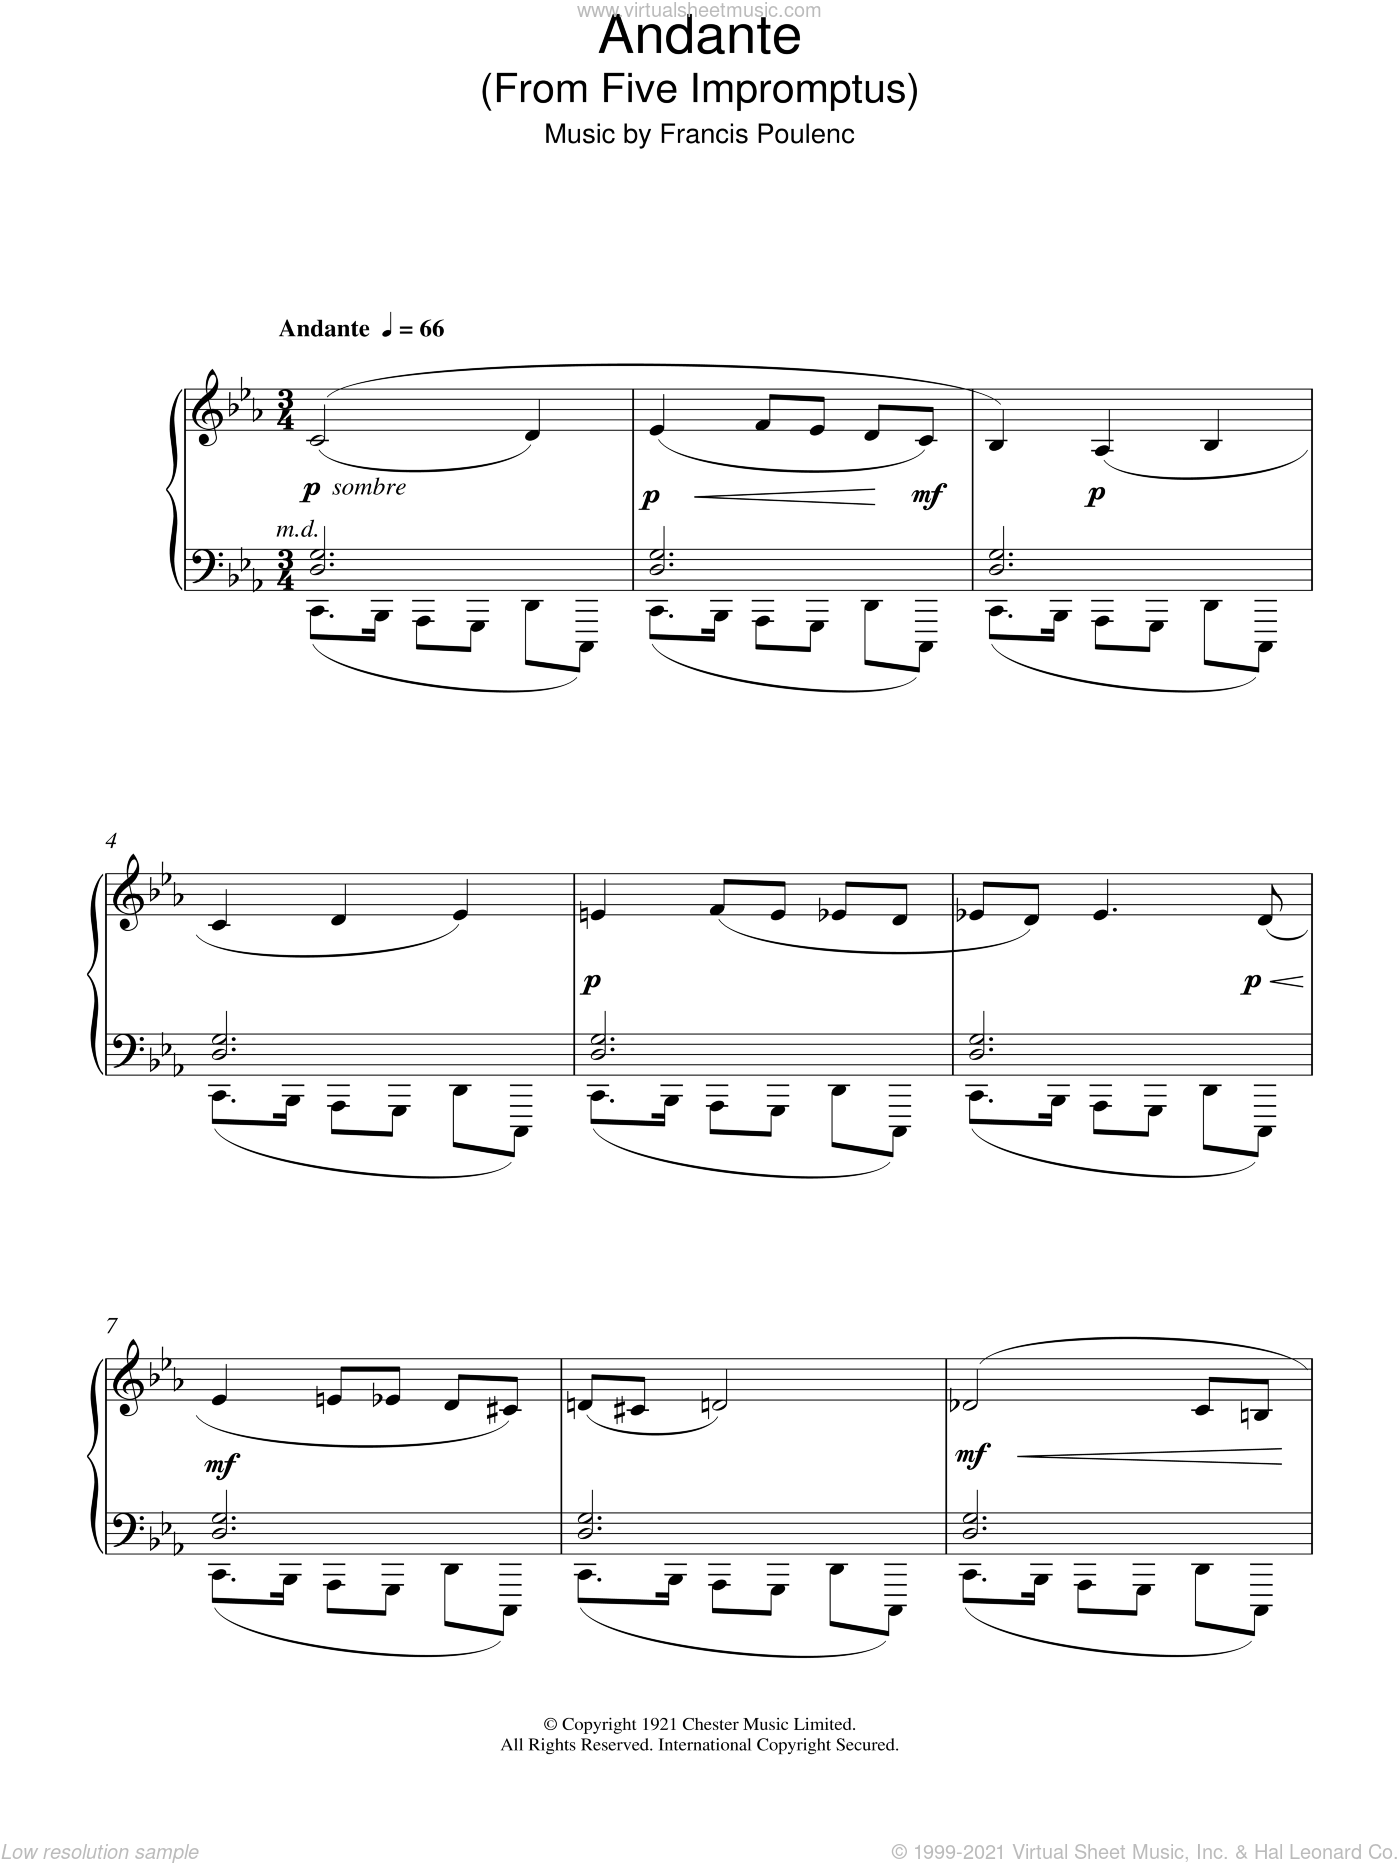 Andante (From Five Impromptus) sheet music for piano solo by Francis Poulenc, intermediate skill level